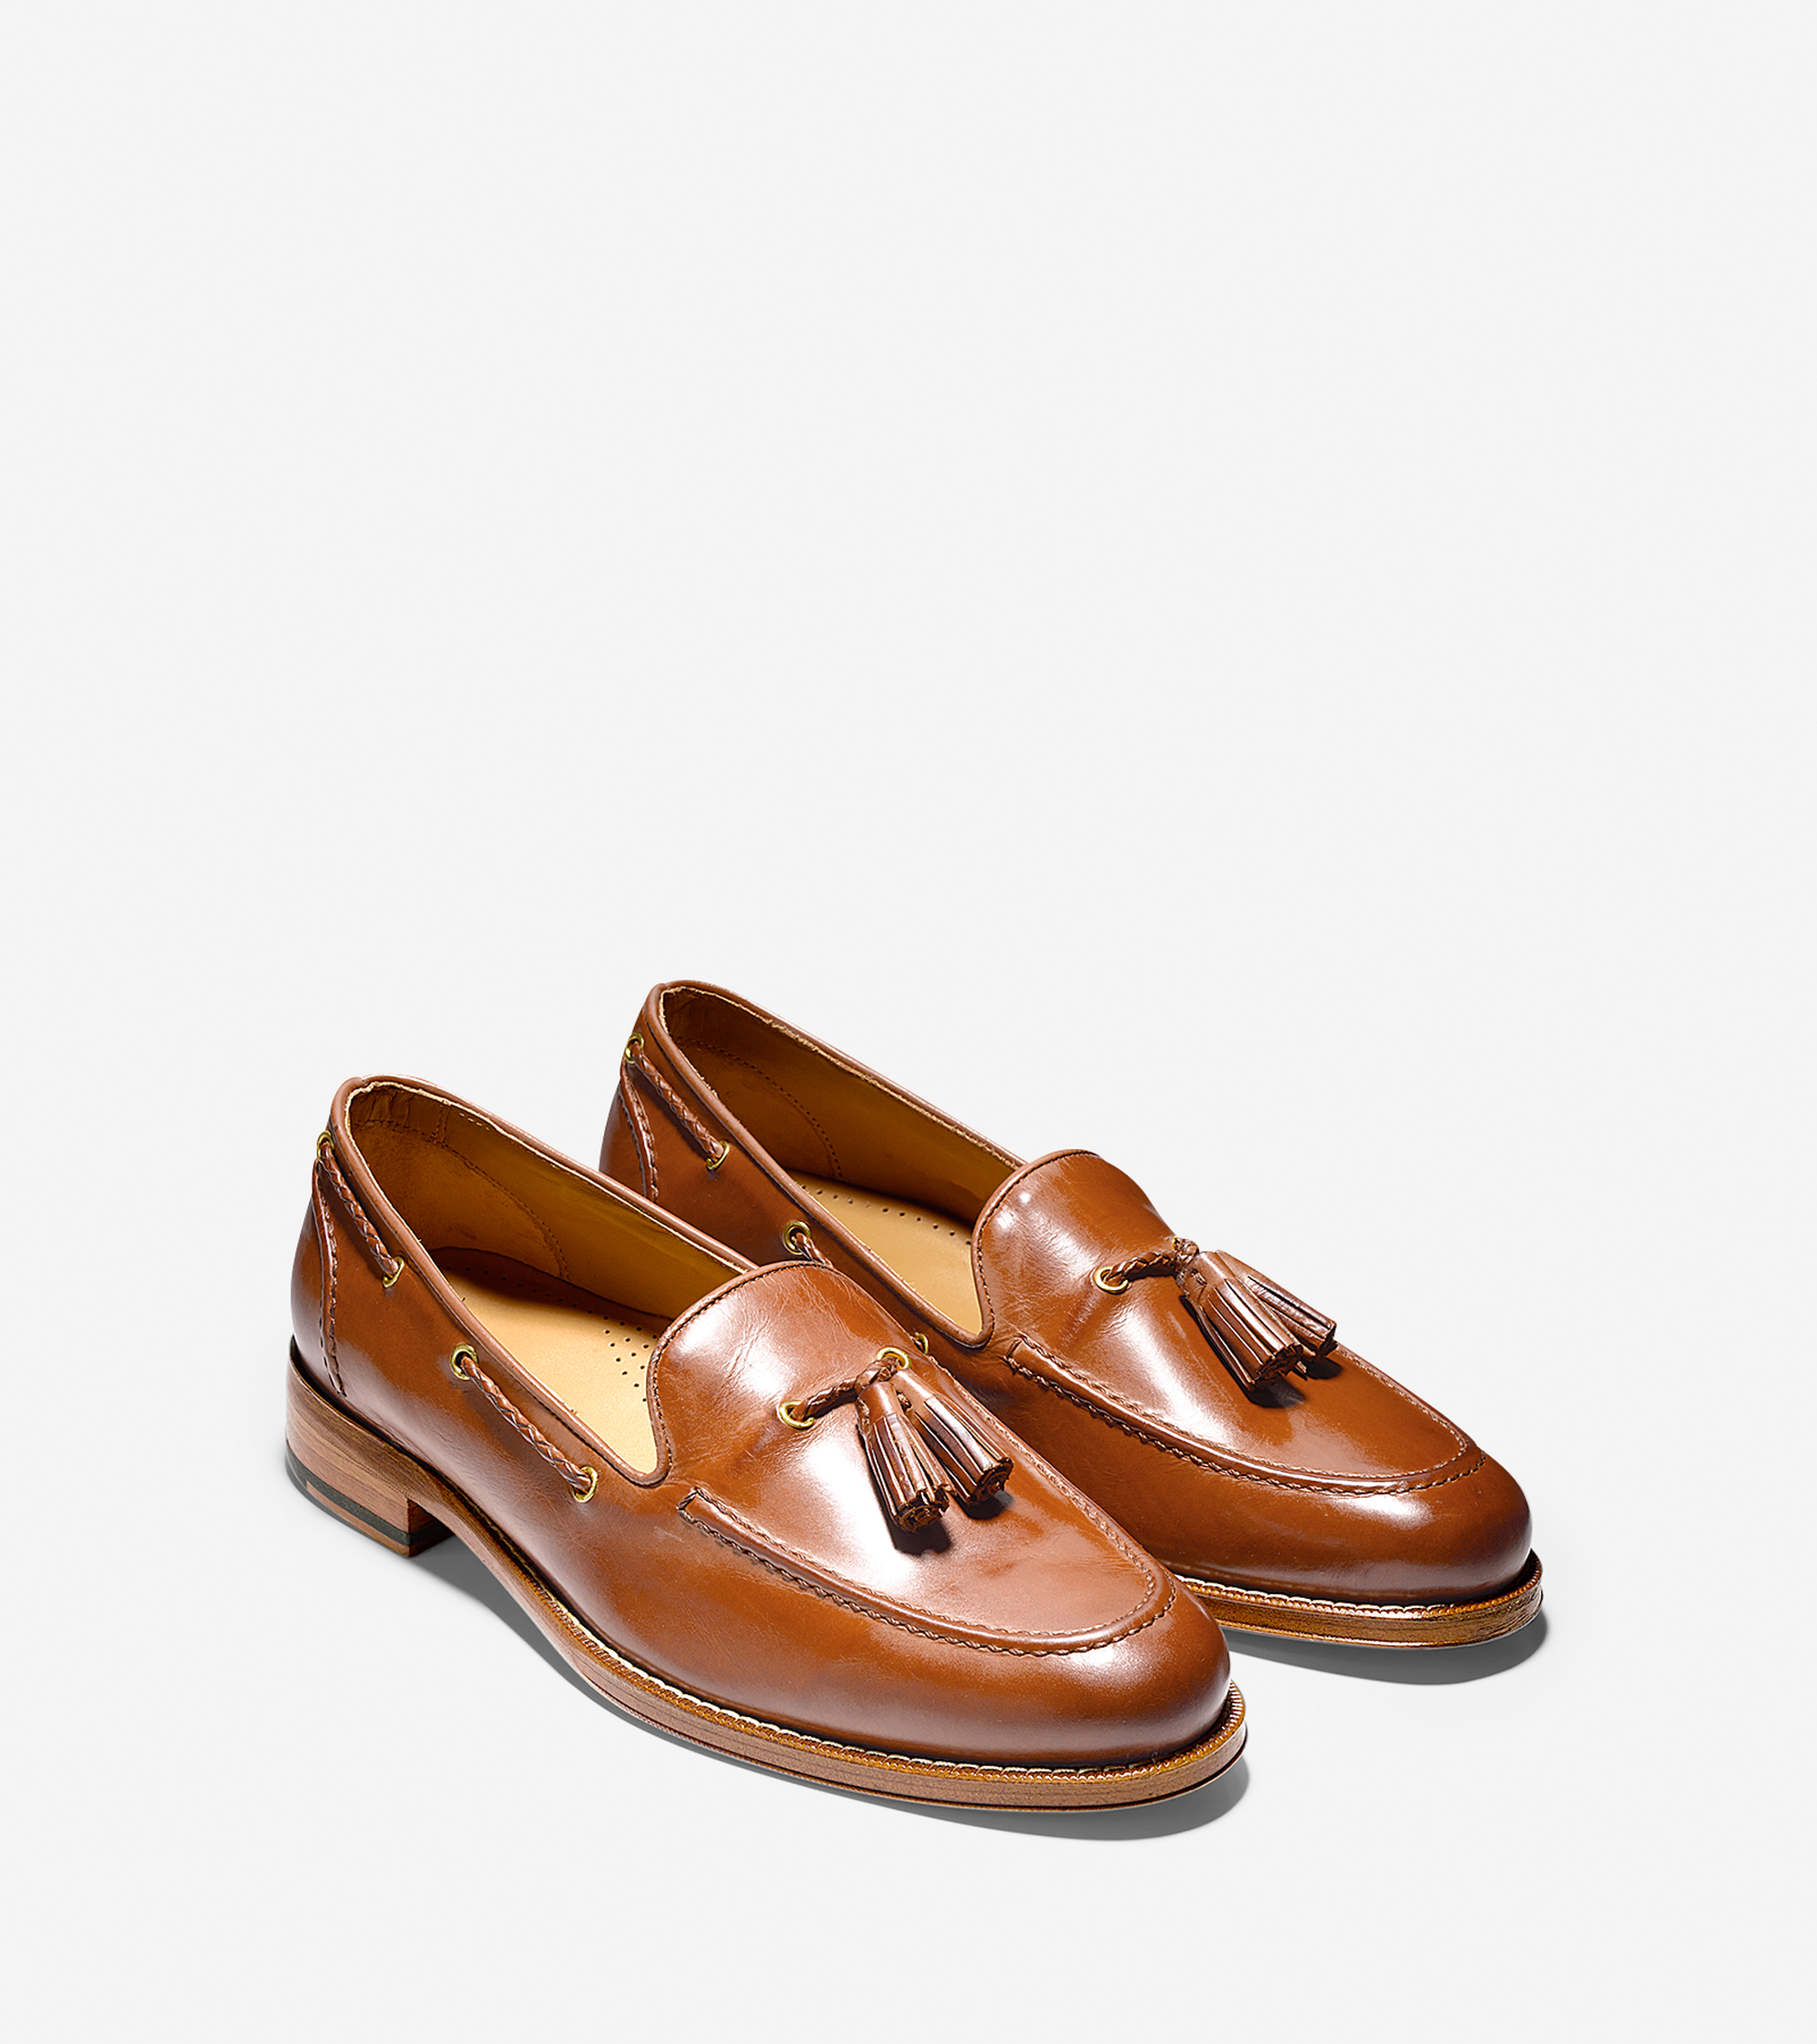 Cole Haan Brown Shoes M